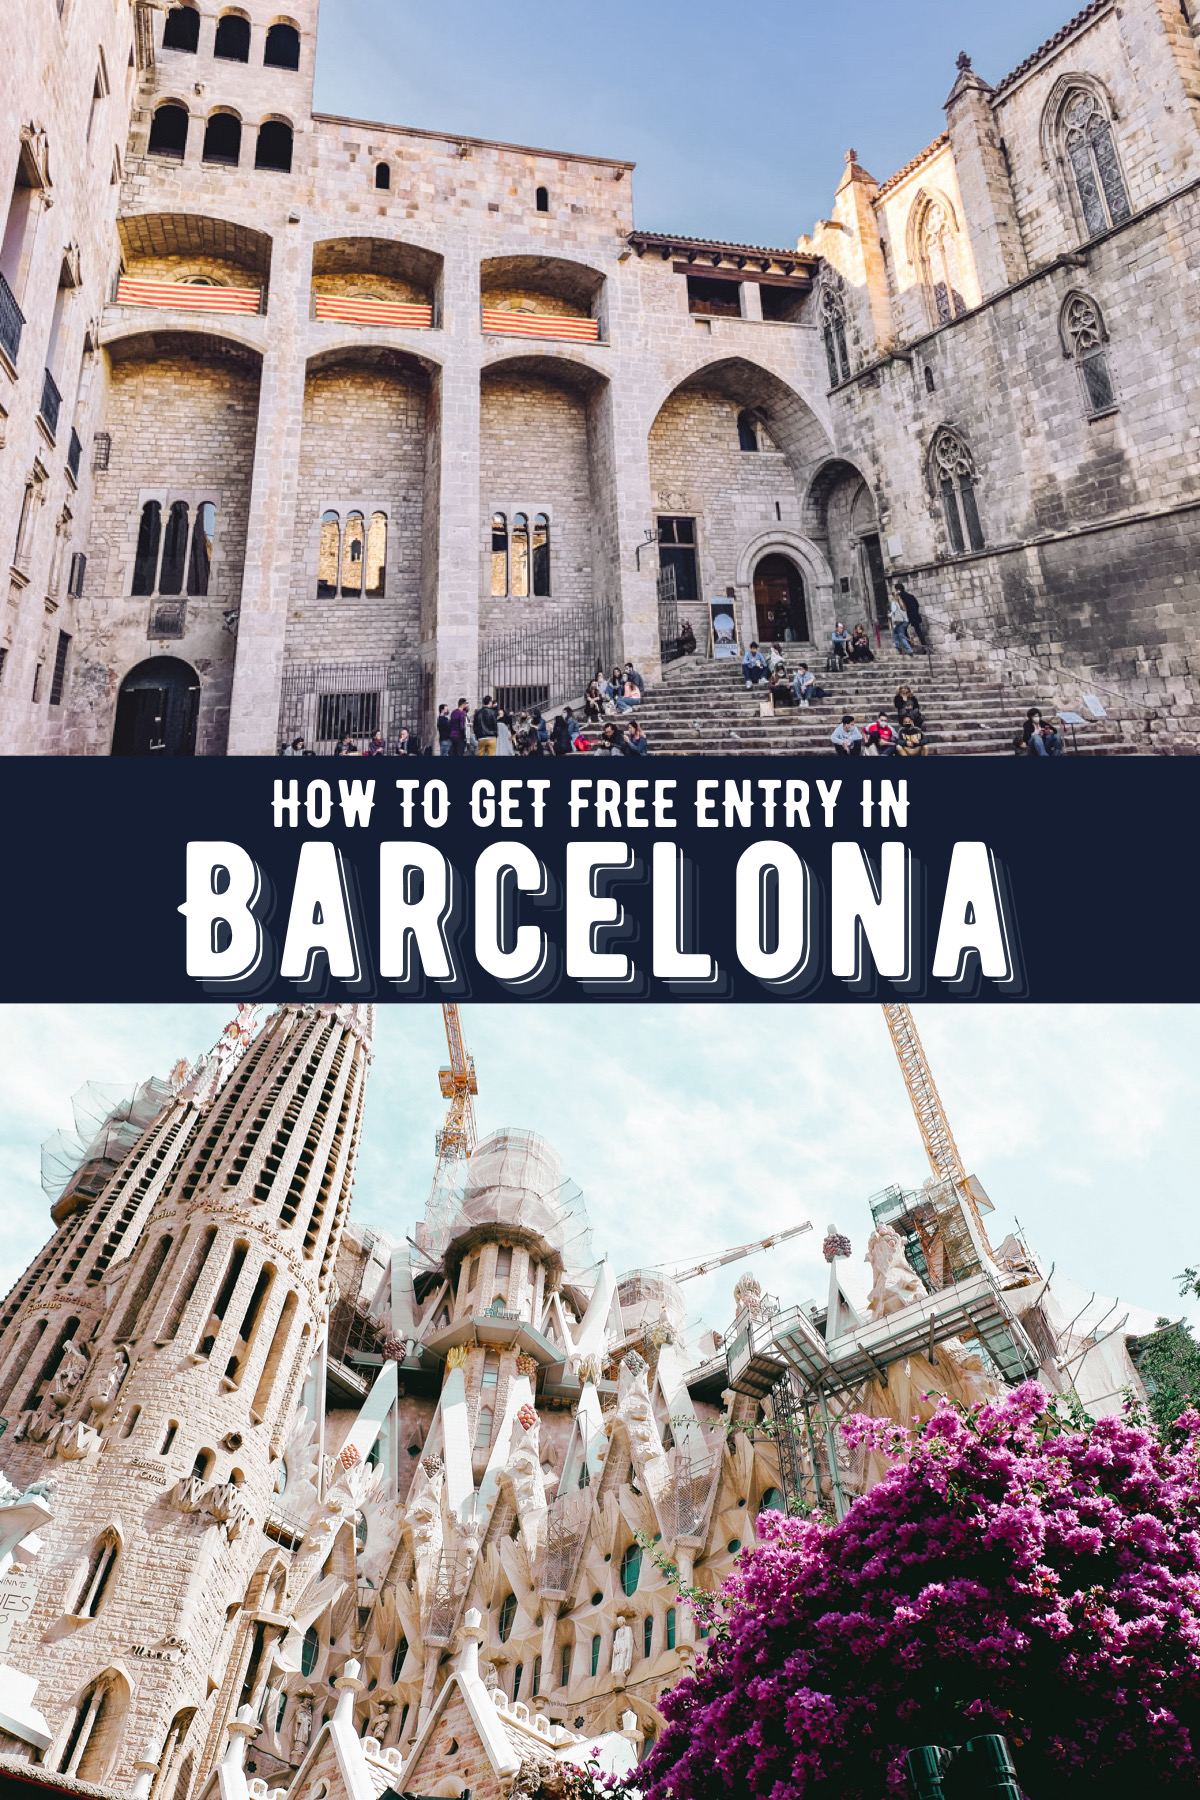 Here is a list of free things to do on a Sunday in Barcelona. Make sure you check out these great cheats to get free entry in Barcelona